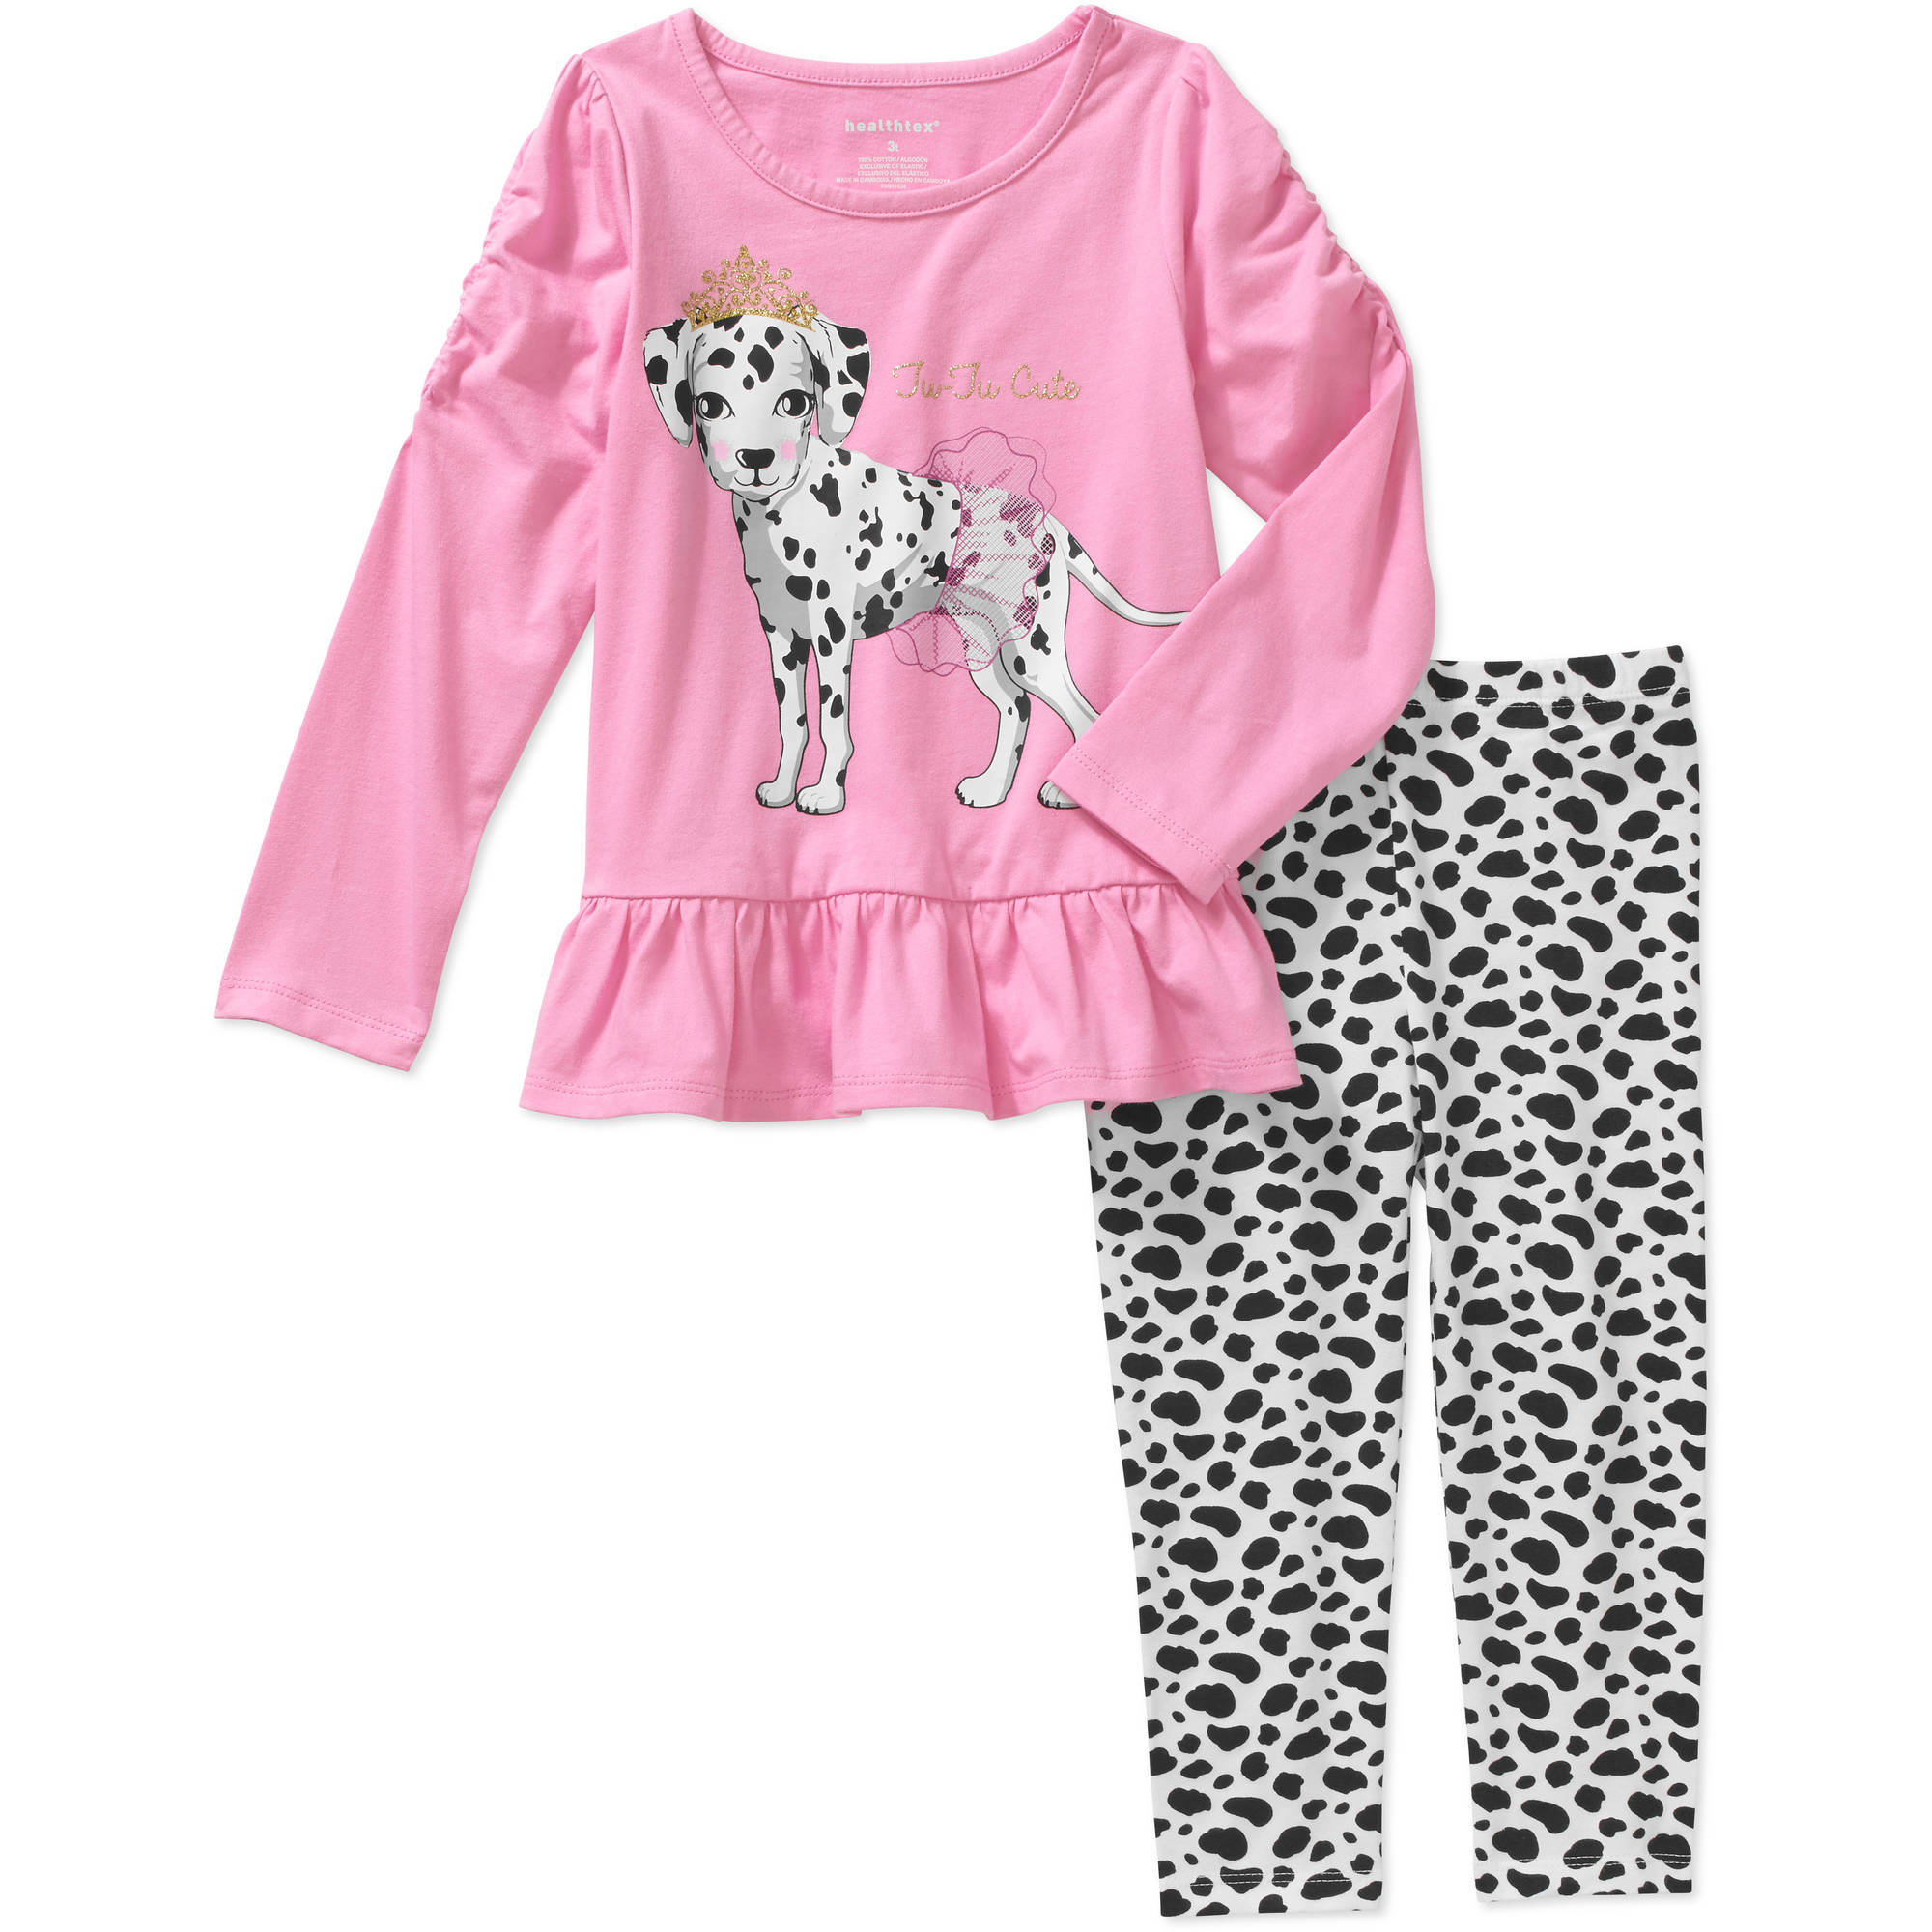 Healthtex Toddler Girls' Knit Tunic and Leggings Outfit Set